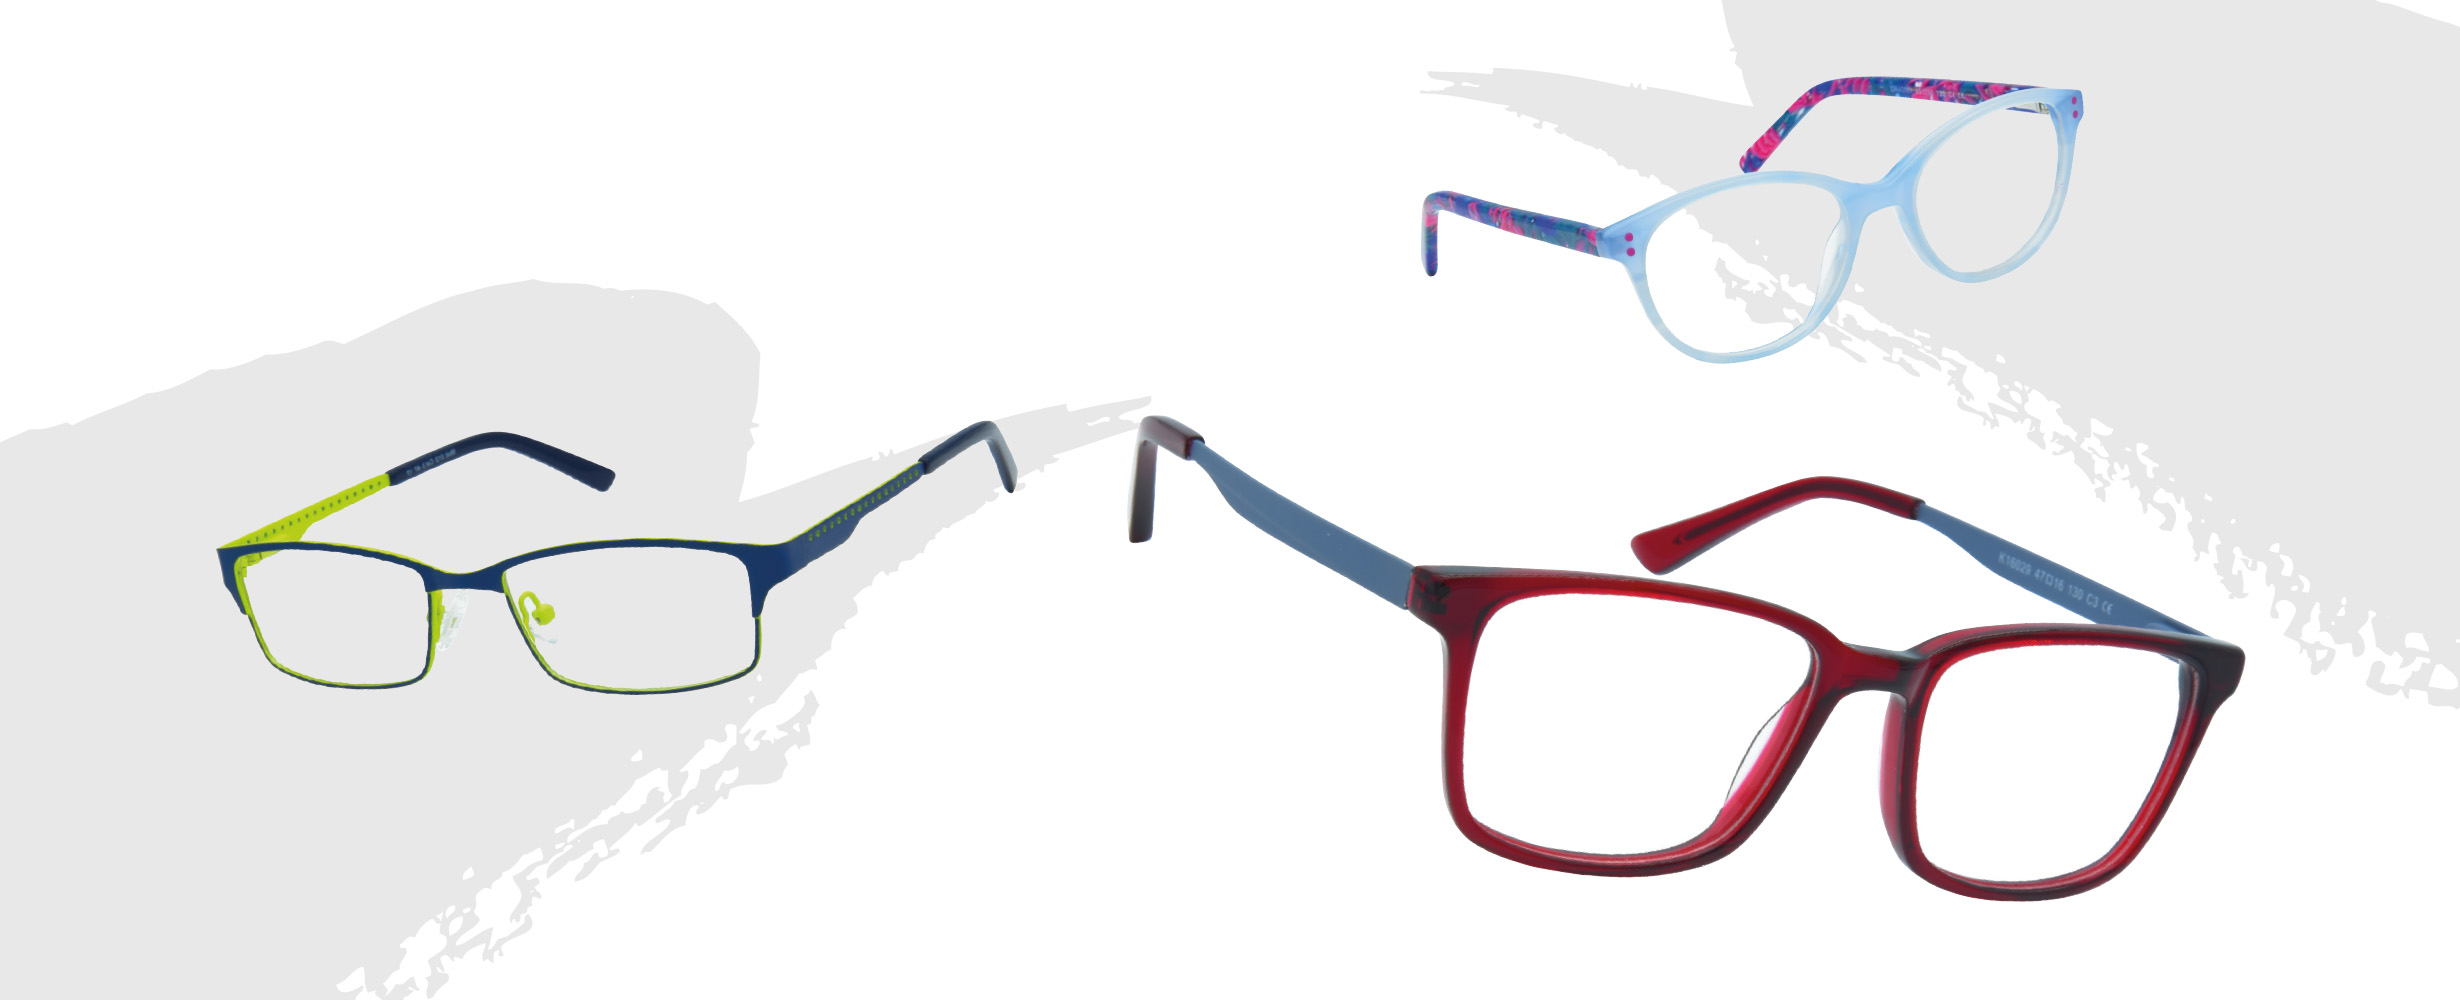 d93b5c3b3 Home Page - Bondeye Optical